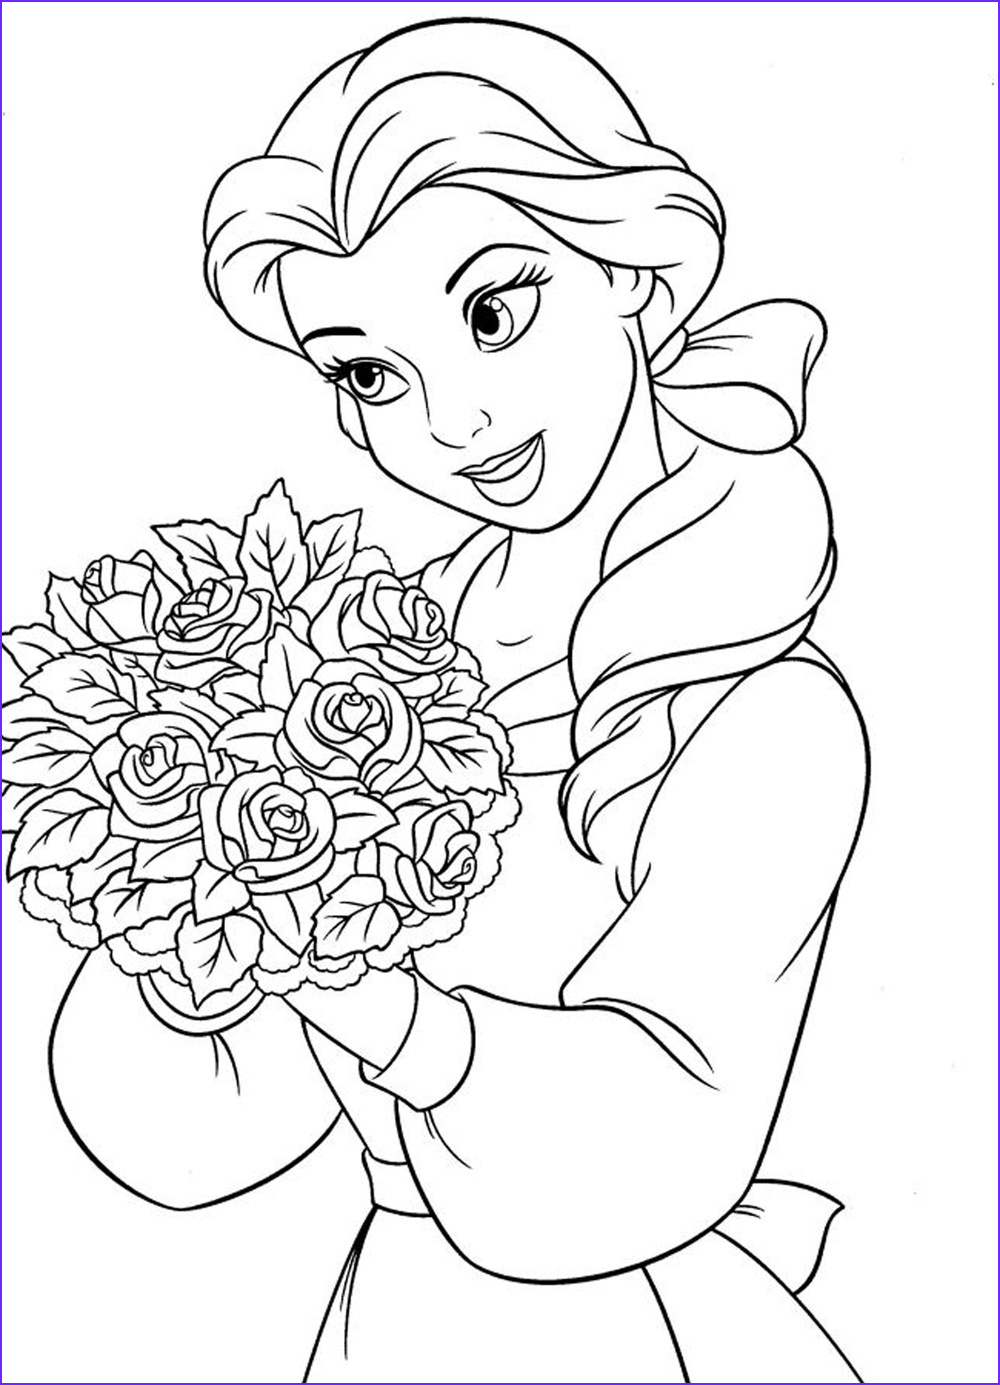 Coloring Sheet for Girls Awesome Stock Coloring Pages for Girls